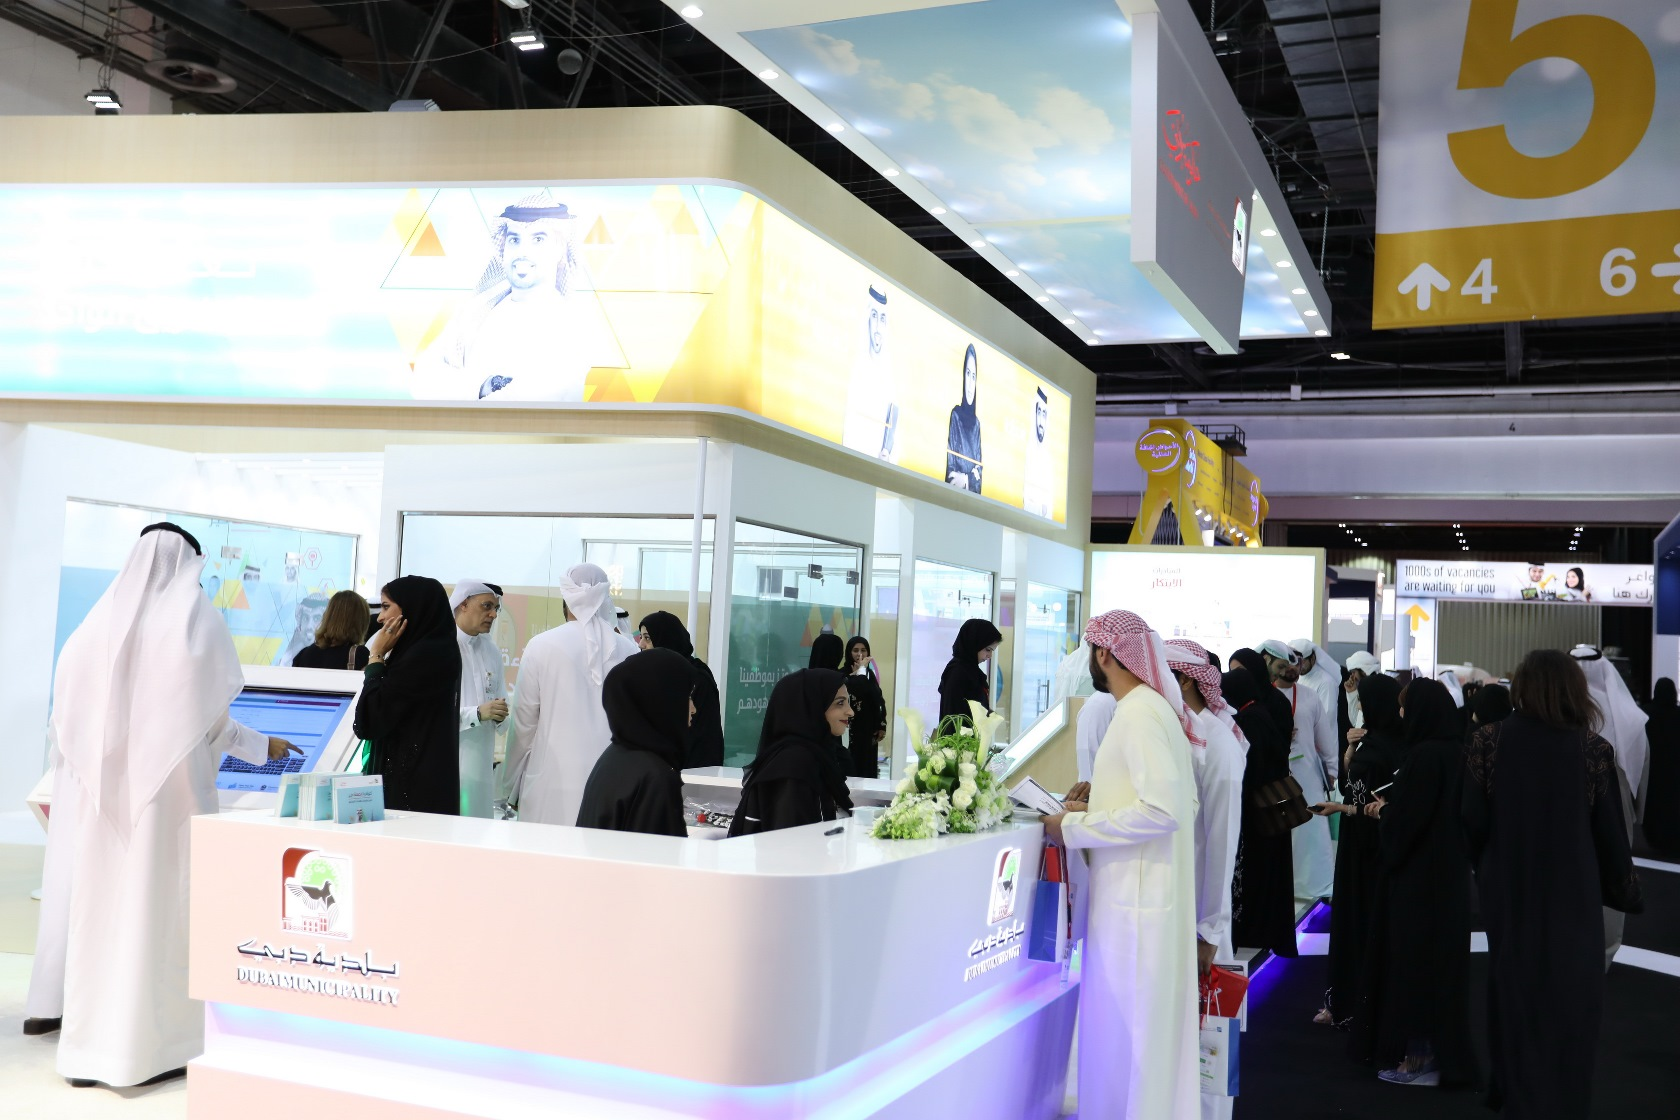 Emirati Women Were Out In Full Force At Careers UAE This Week As Exhibitors From The Countrys Largest Recruitment Fair Report That Number Of